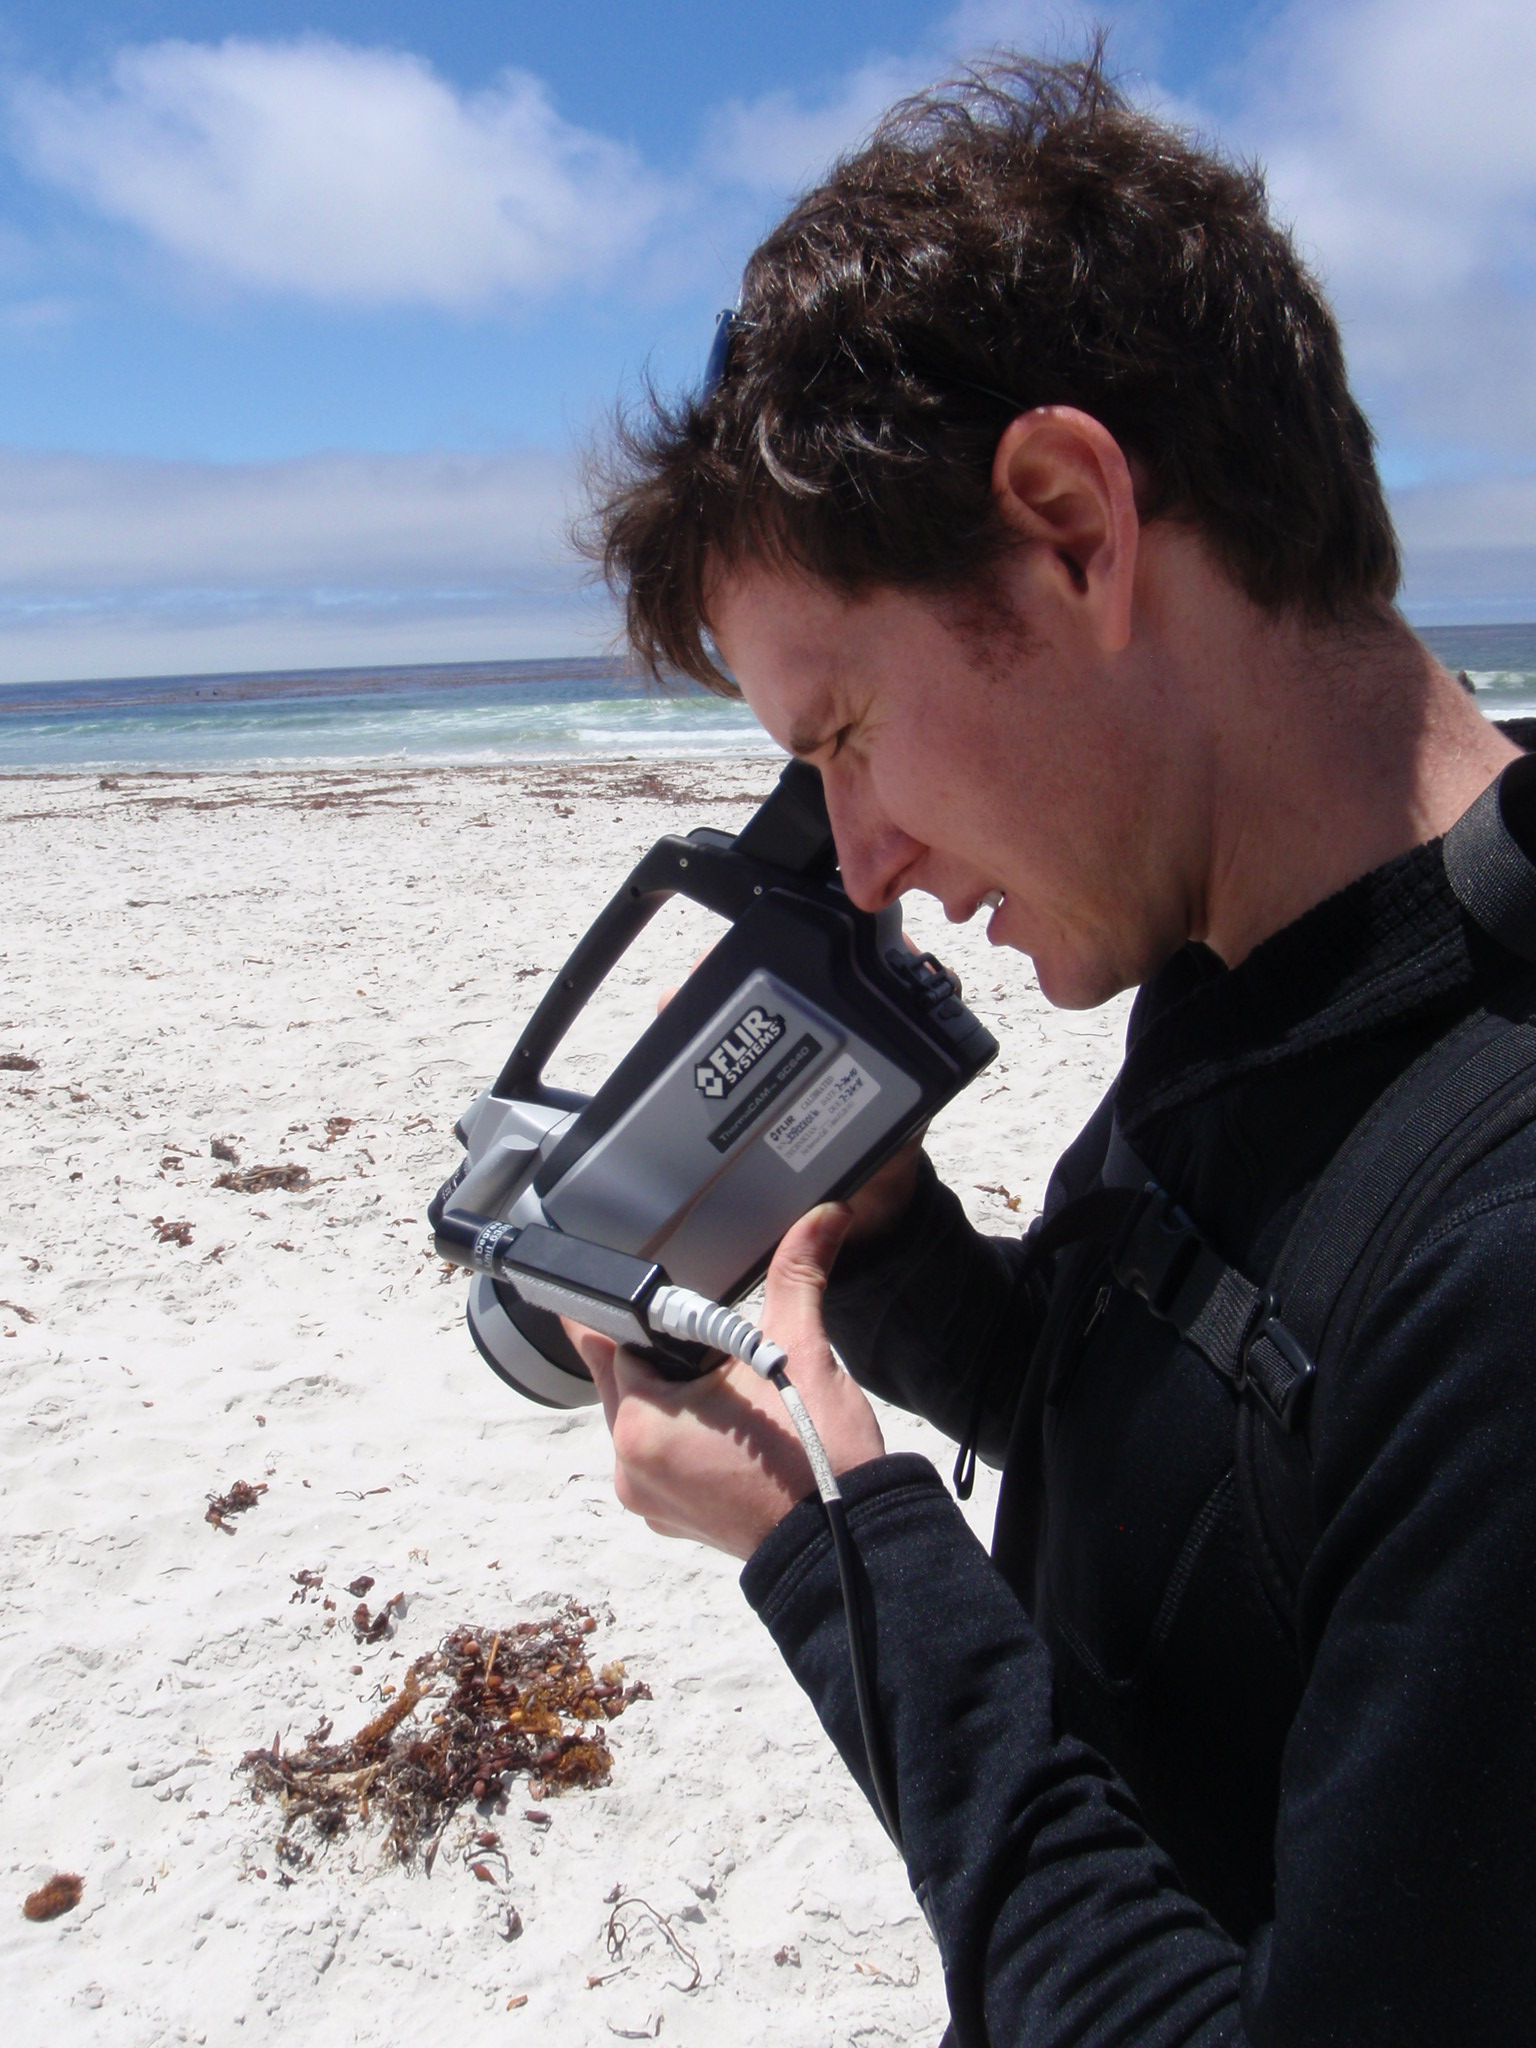 Dr. Chad Brodel uses an infrared camera on a beach in Carmel, CA to determine temperatures as a sensor on an airplane simultaneously collects imagery overhead